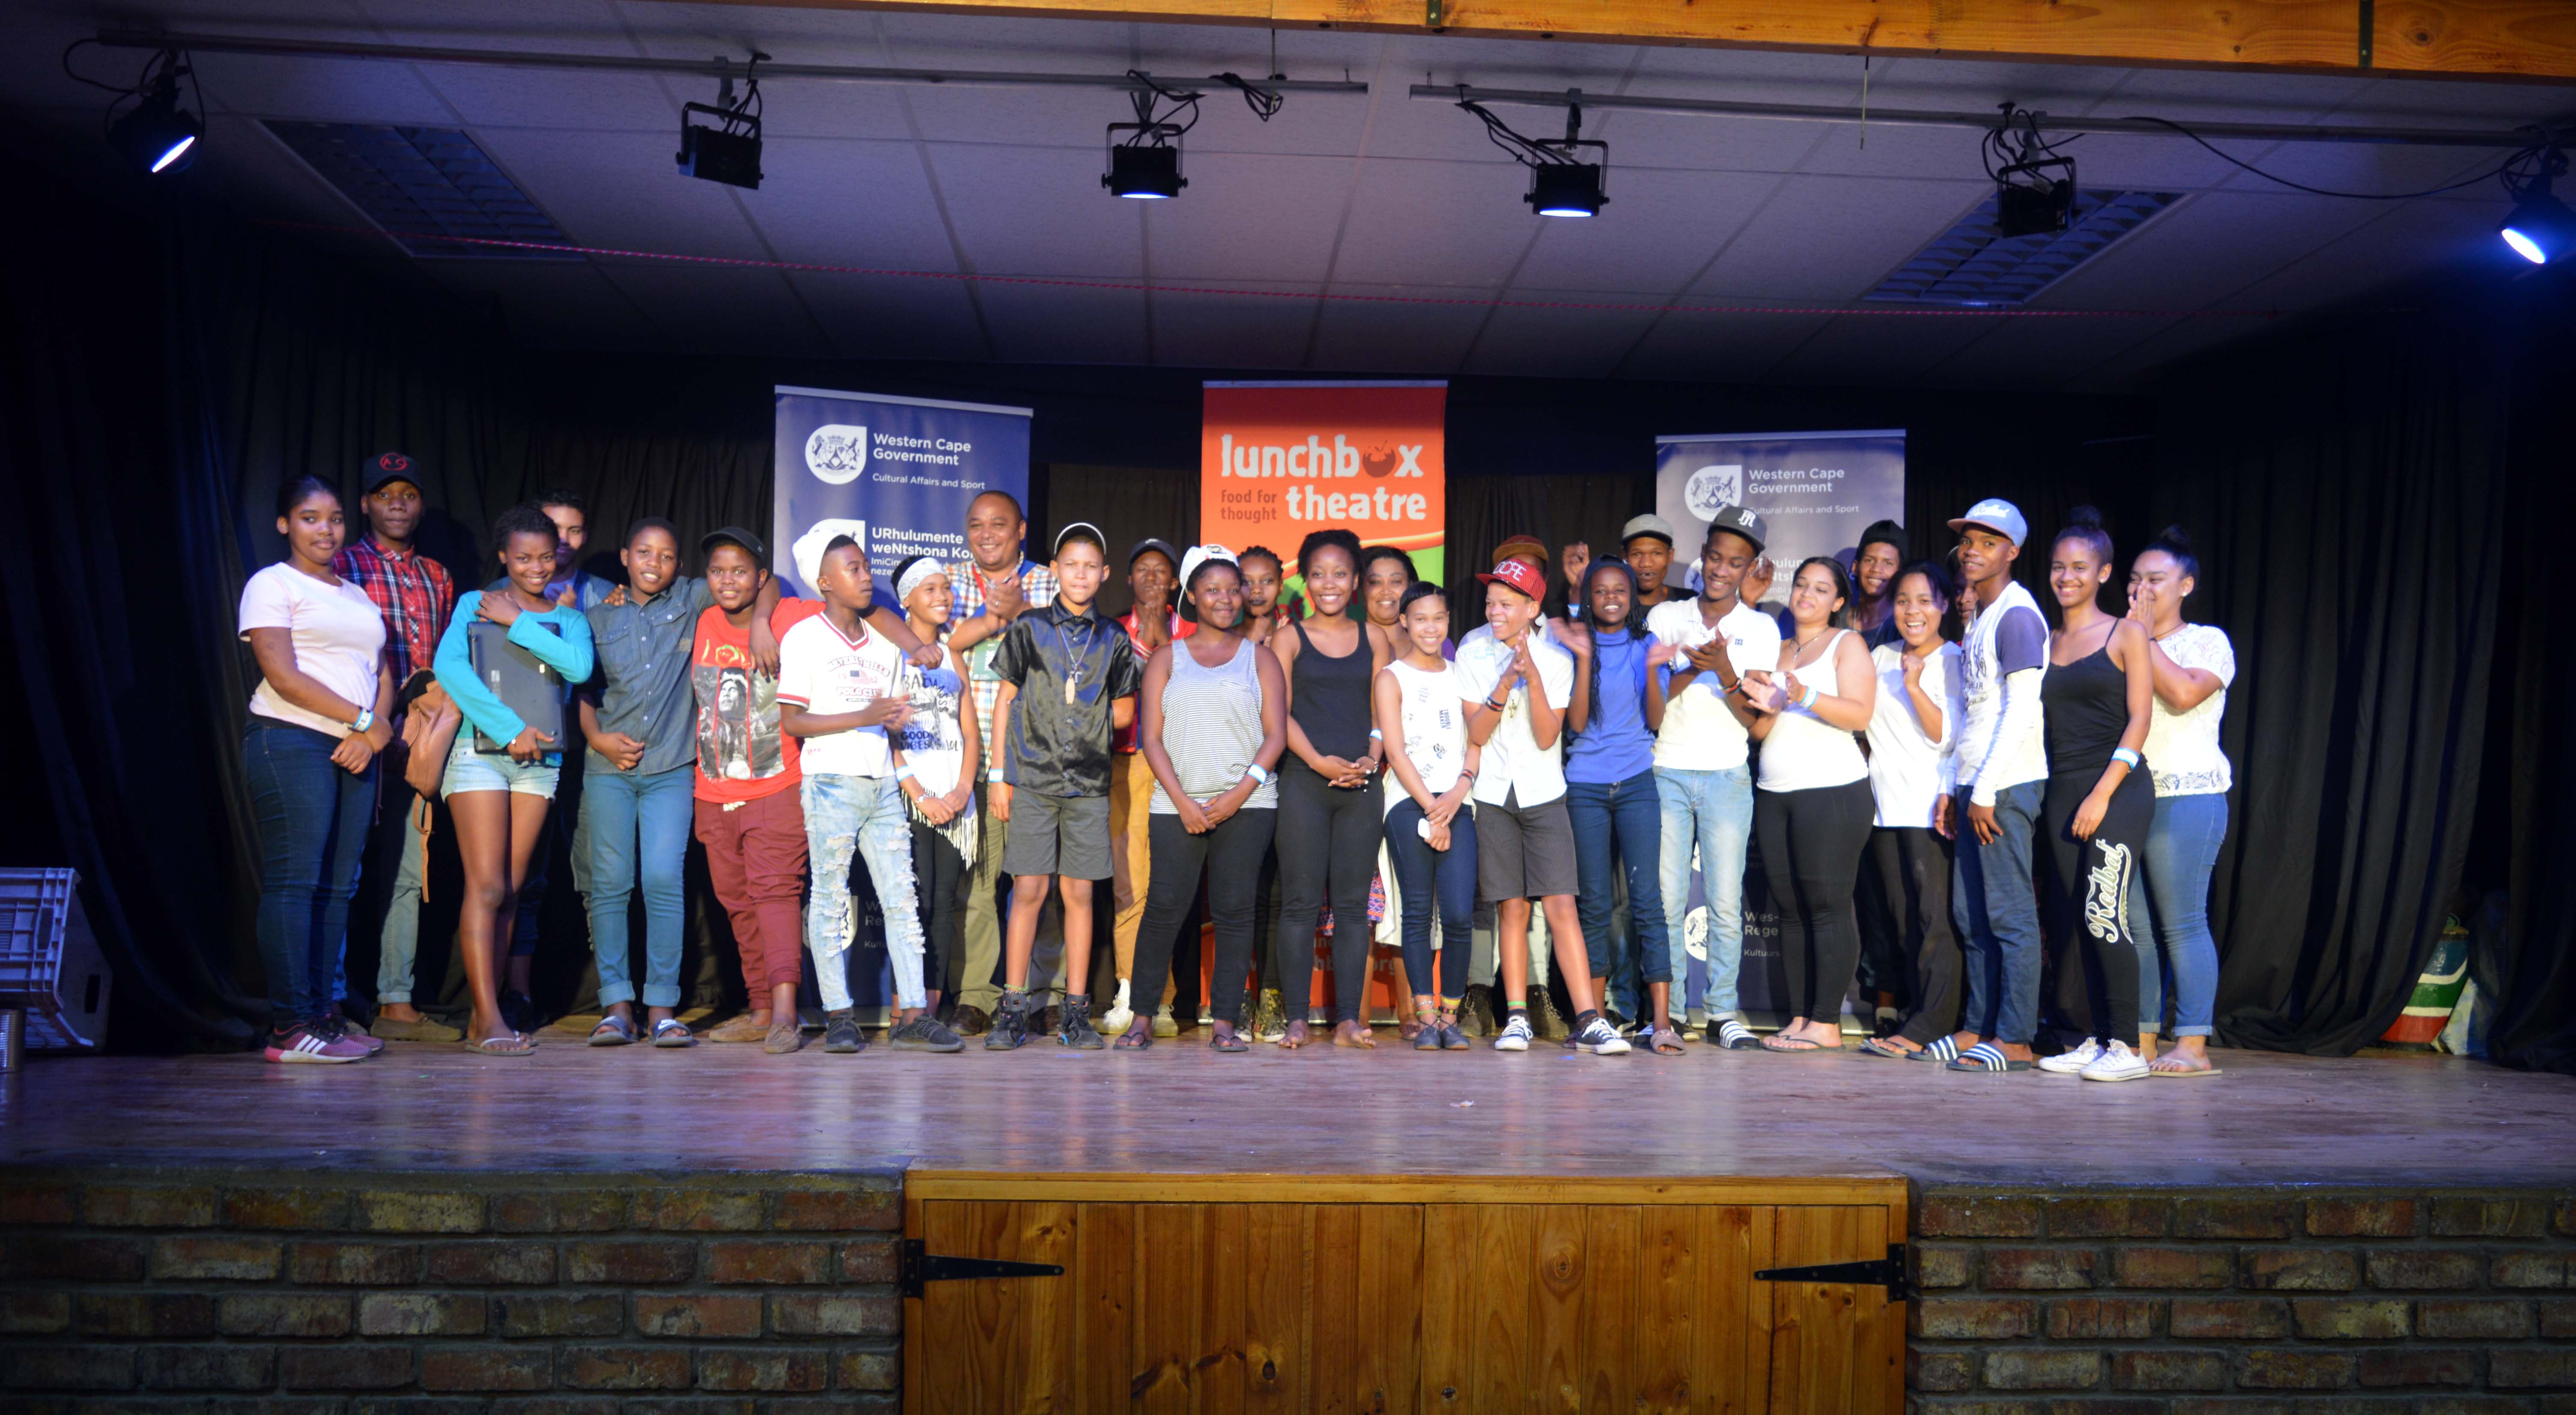 The Best of DCAS cast with Chief Director Guy Redman